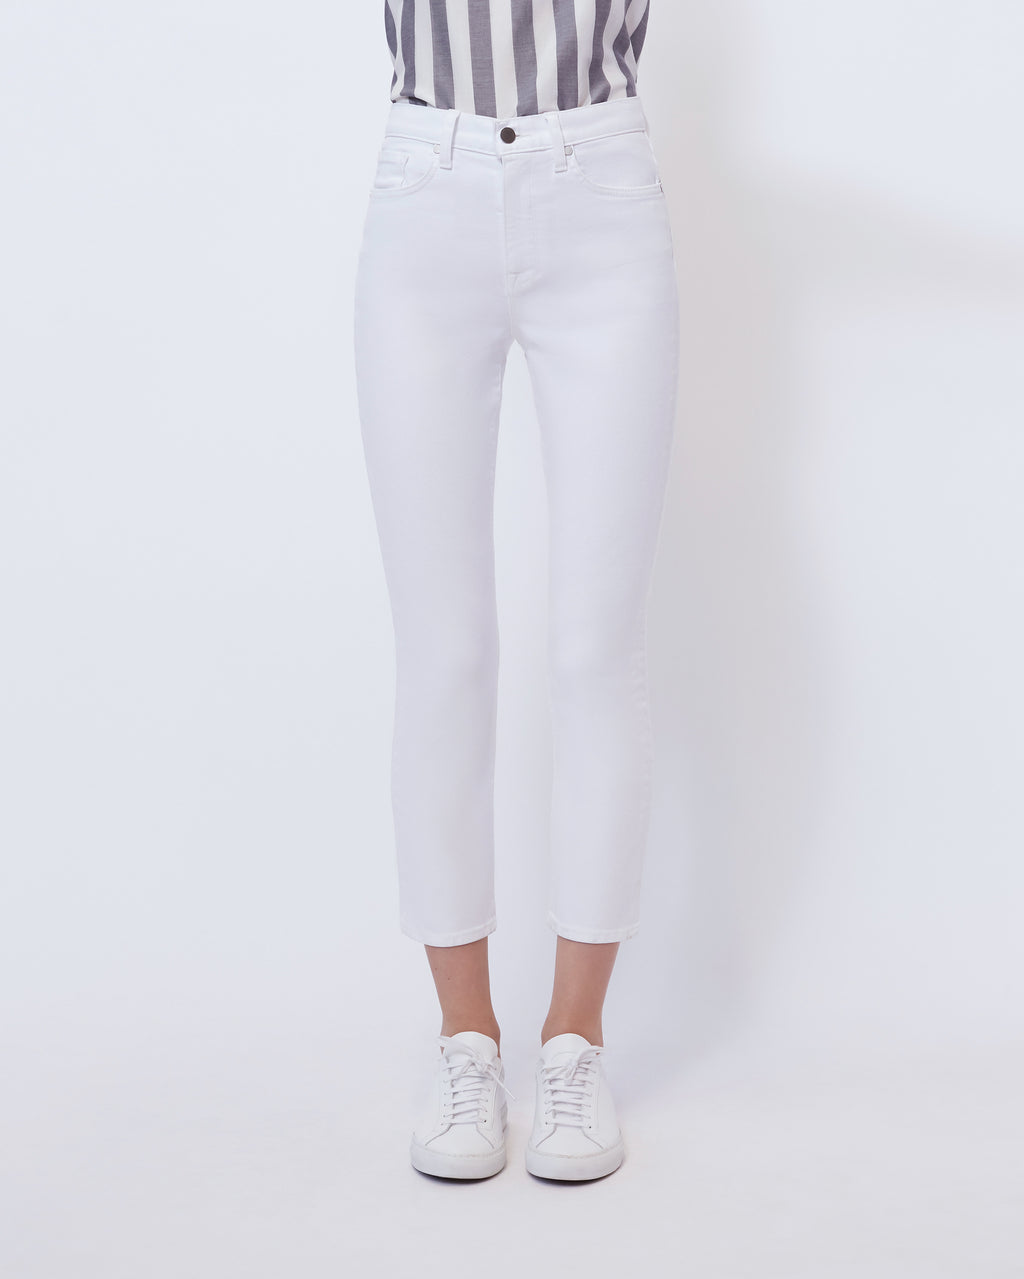 The Vintage Straight Jean in Pure White